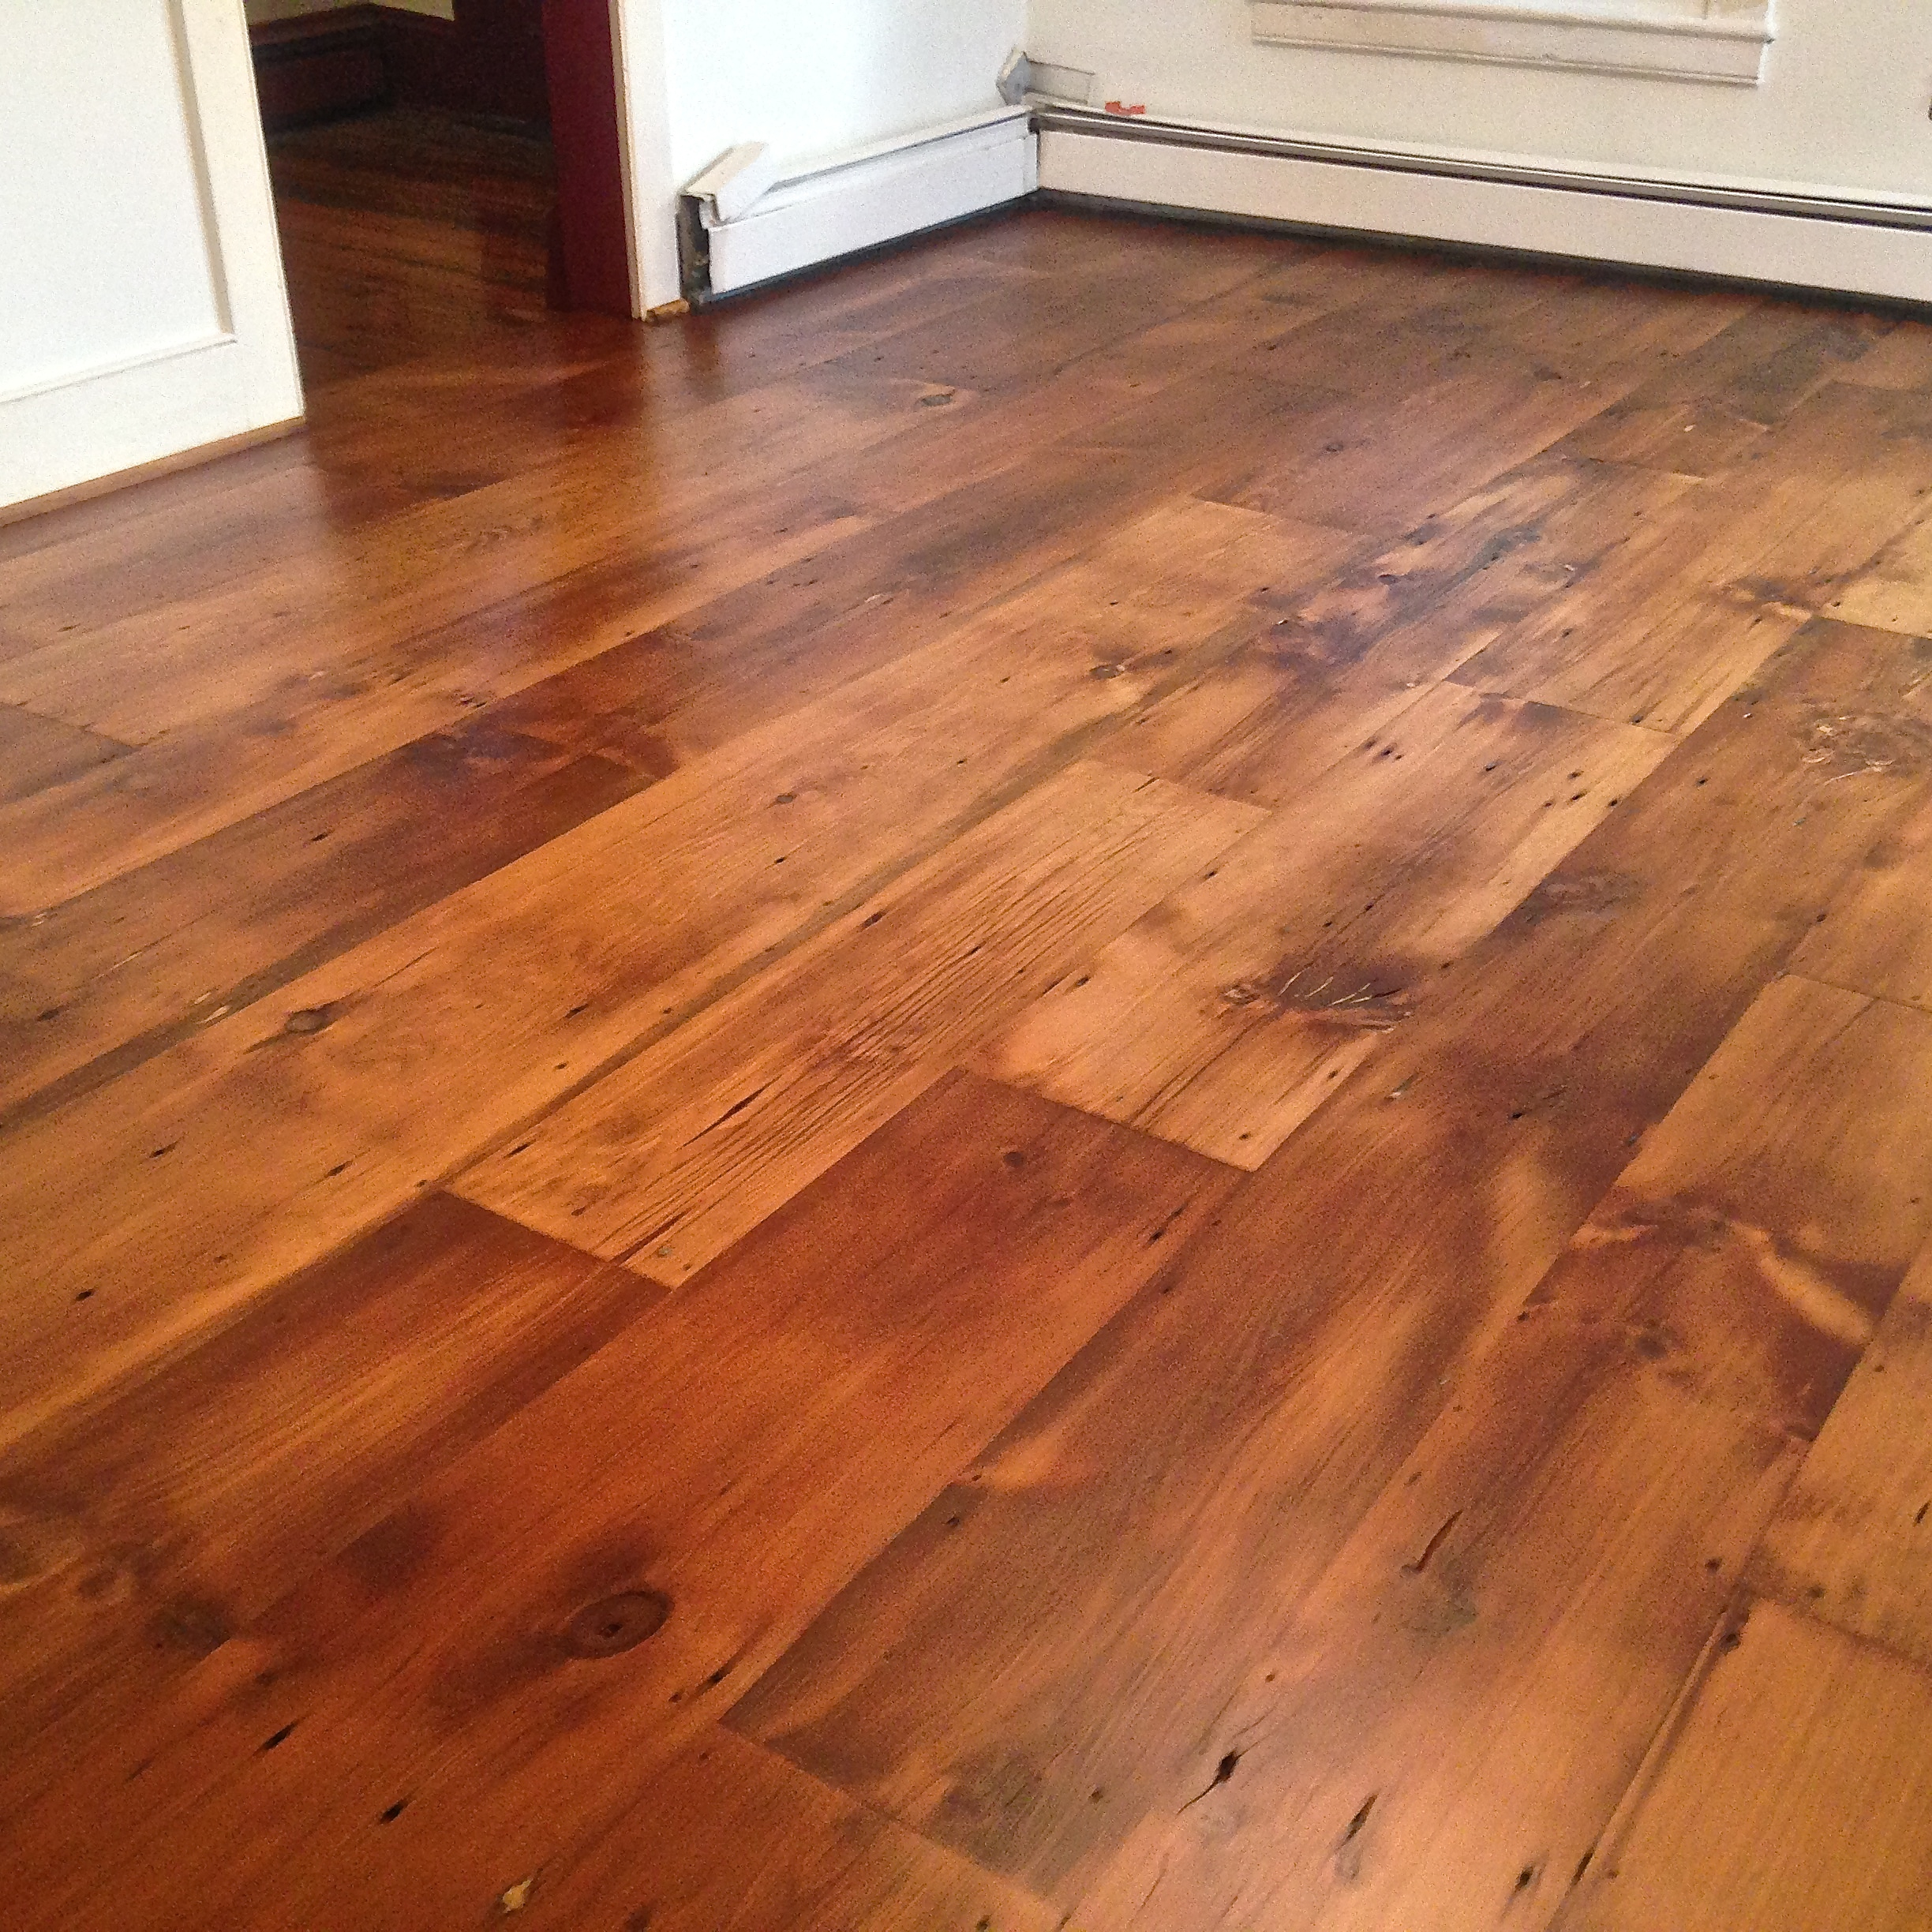 Wide plank reclaimed flooring authentic antique lumber for Reclaimed flooring